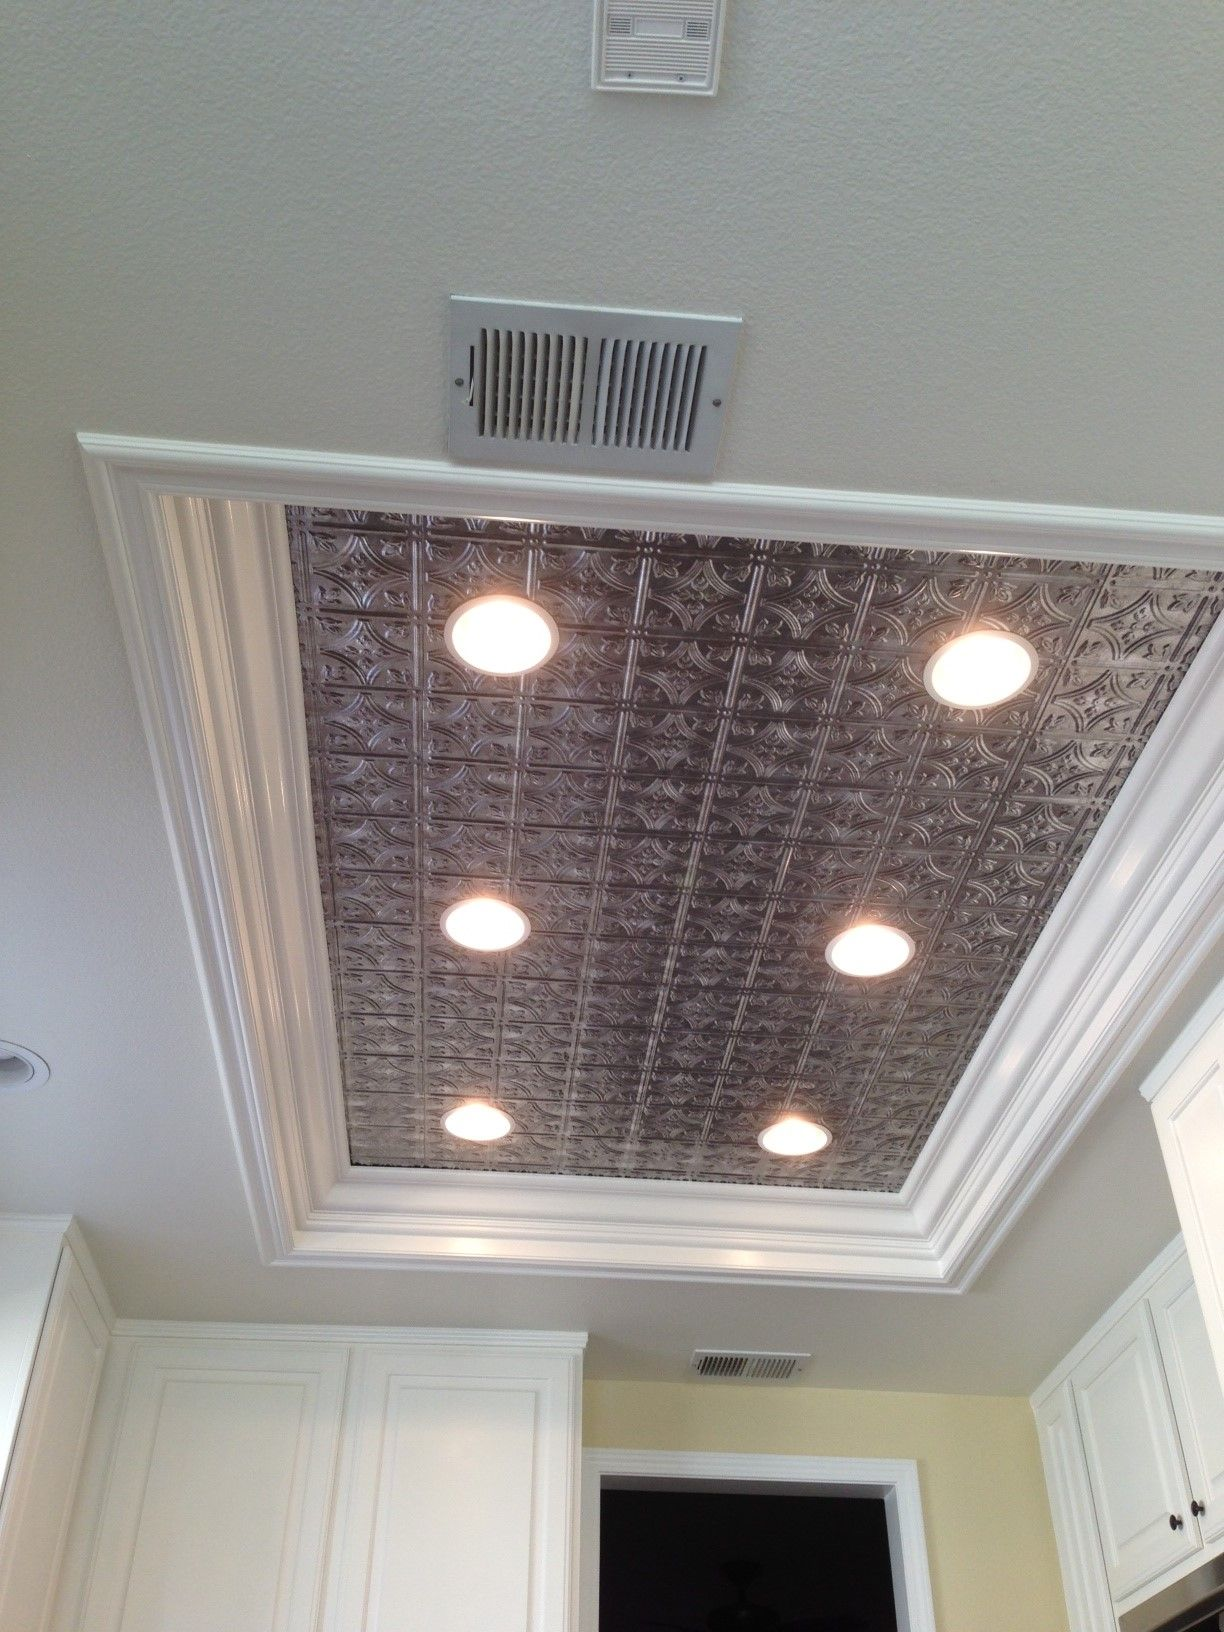 Kitchen Recessed Lighting Remodel Flourescent Light Box In Kitchen We Also Replaced The